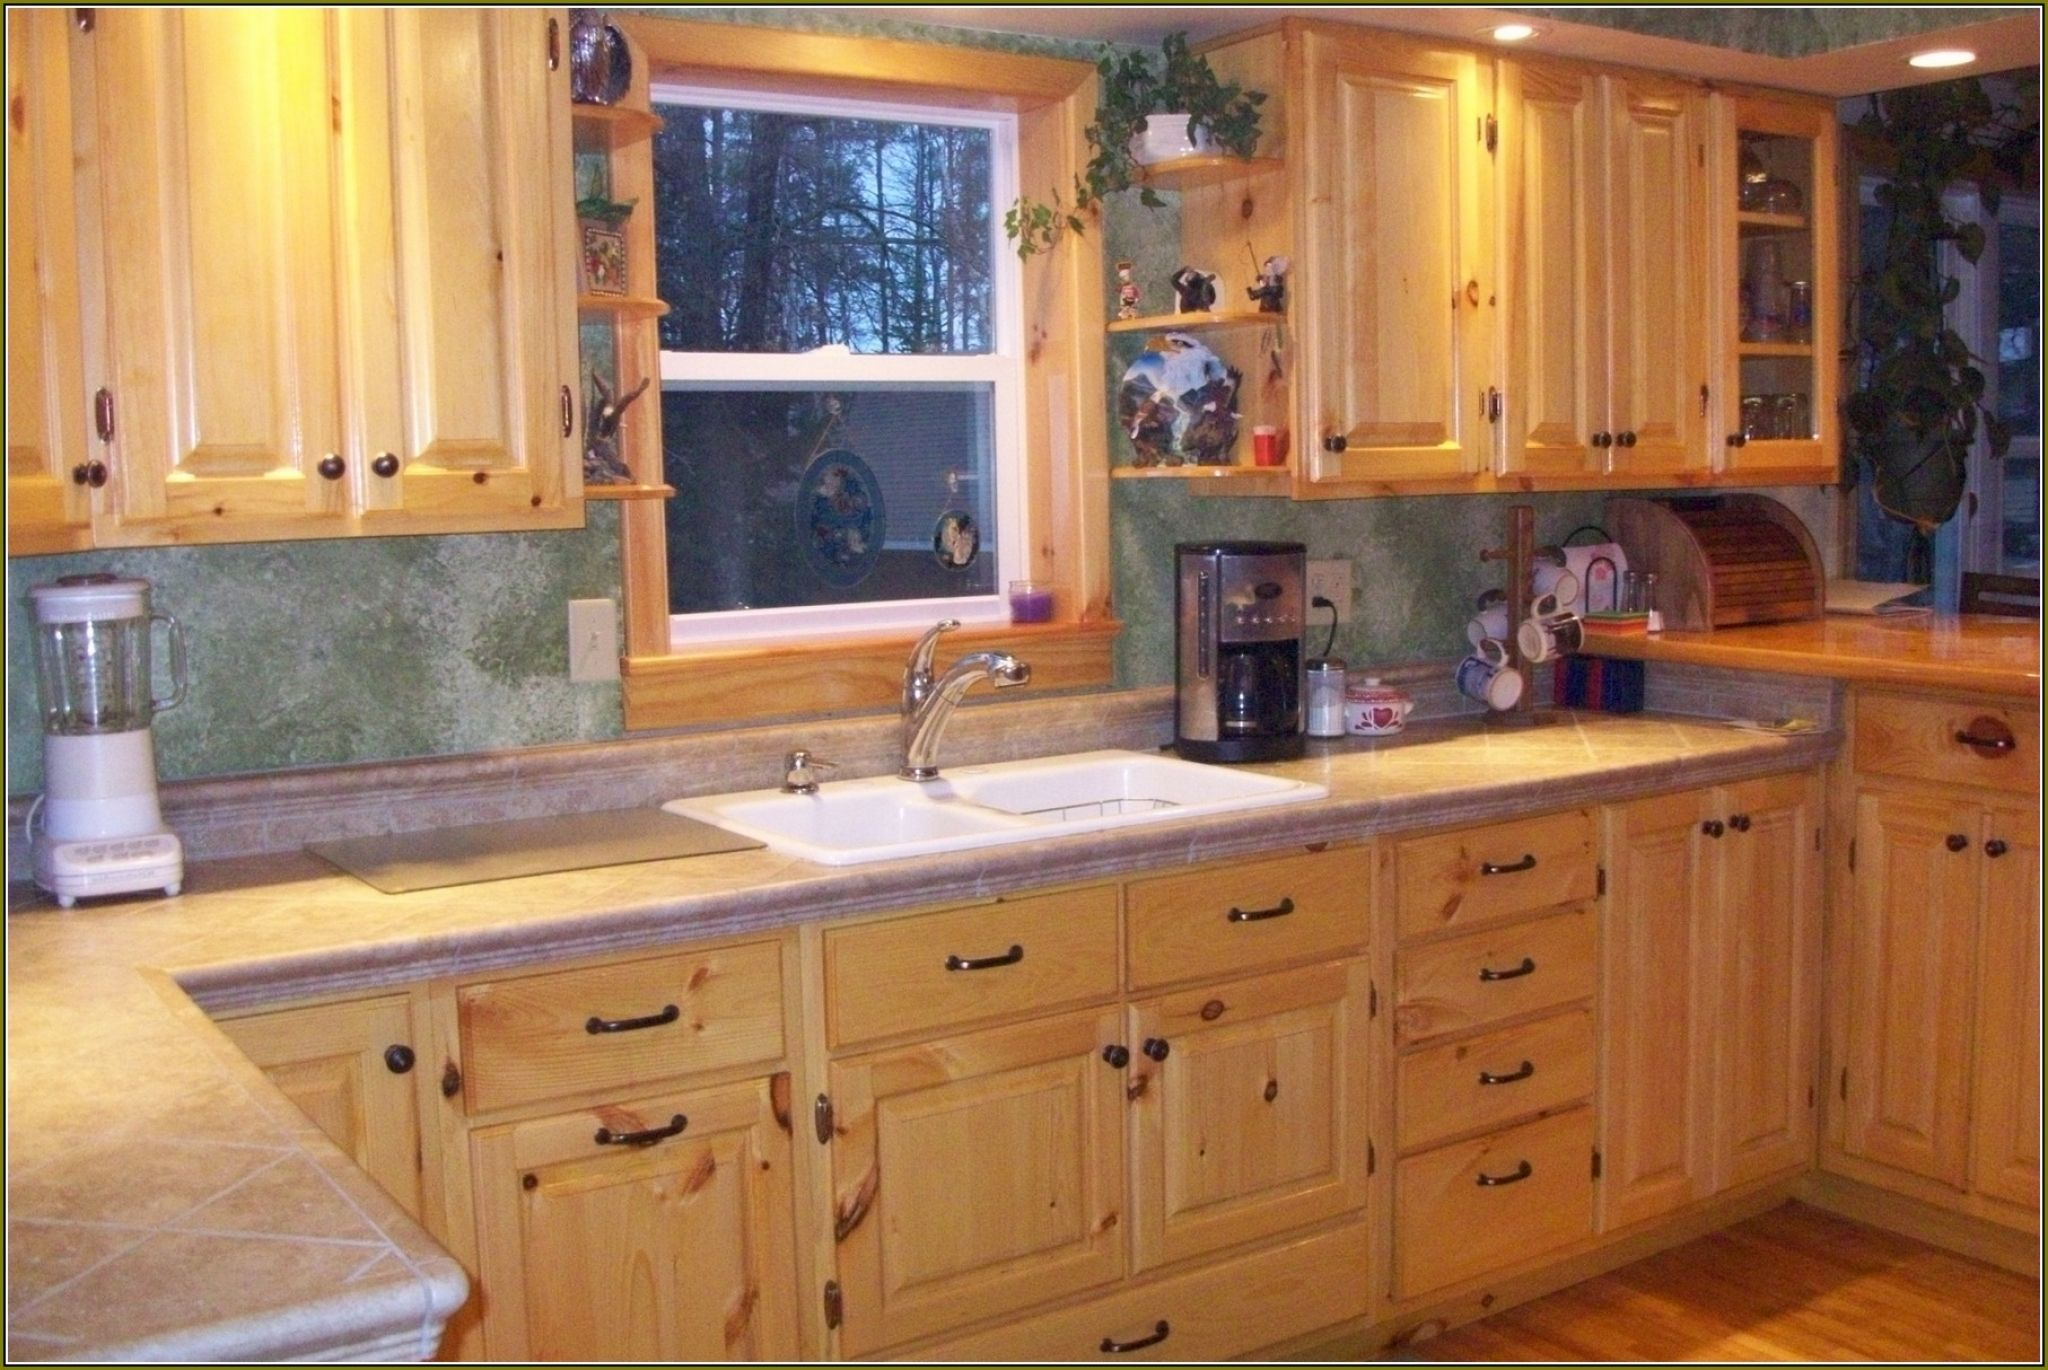 Interior Knotty Pine Kitchen Cabinet Doors knotty pine kitchen cabinet doors small pantry ideas check more at http